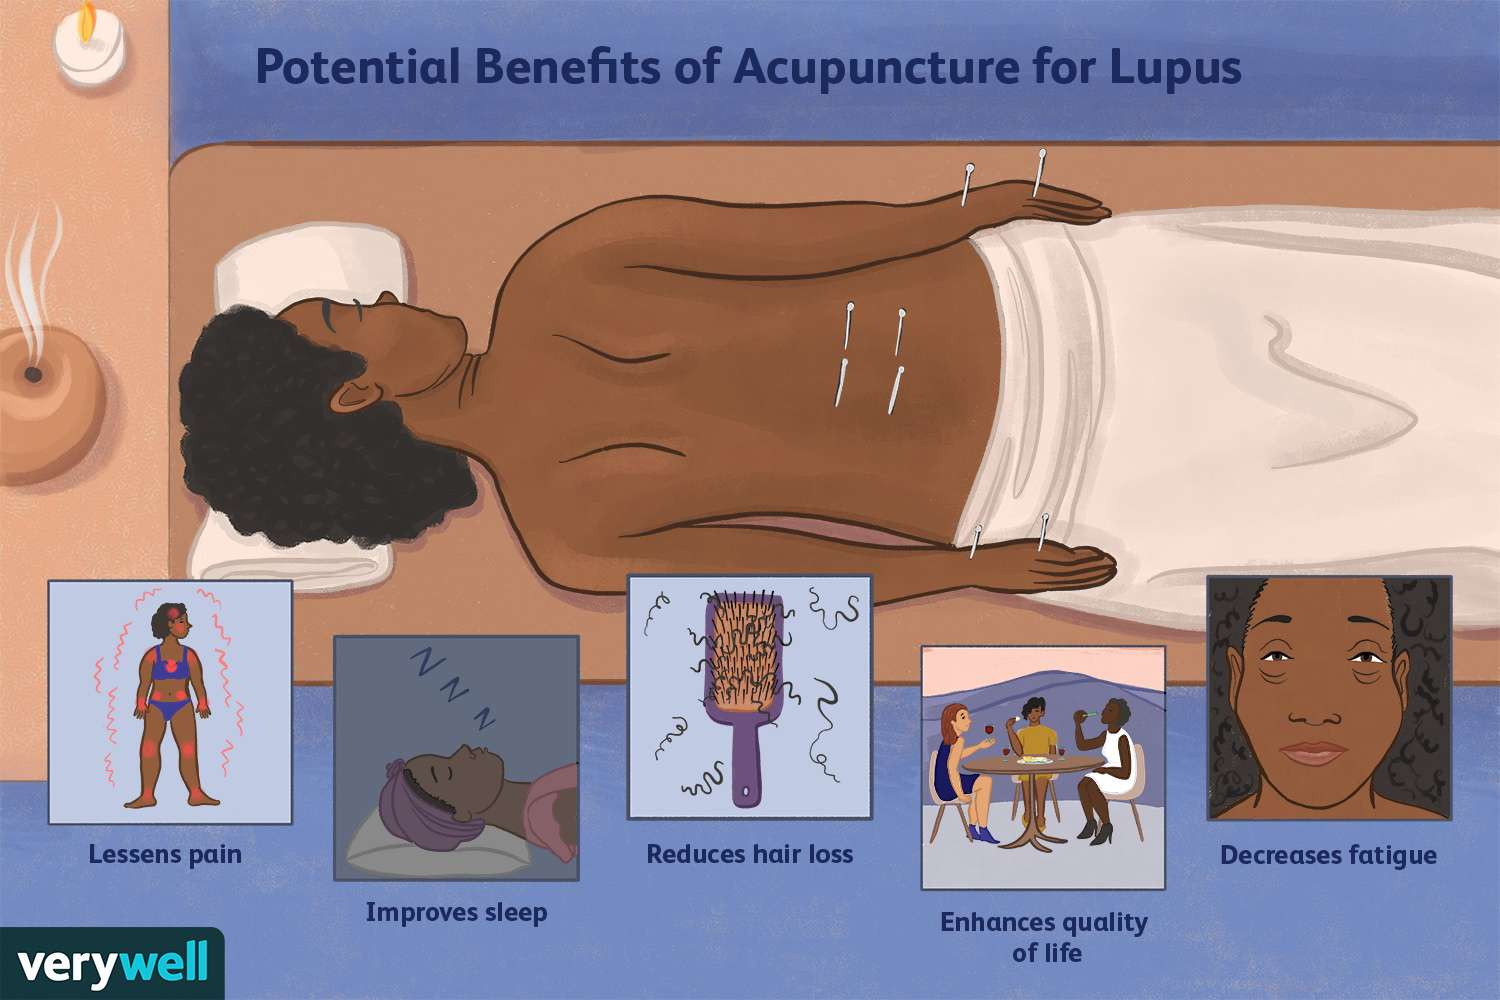 Potential Benefits of Acupuncture for Lupus